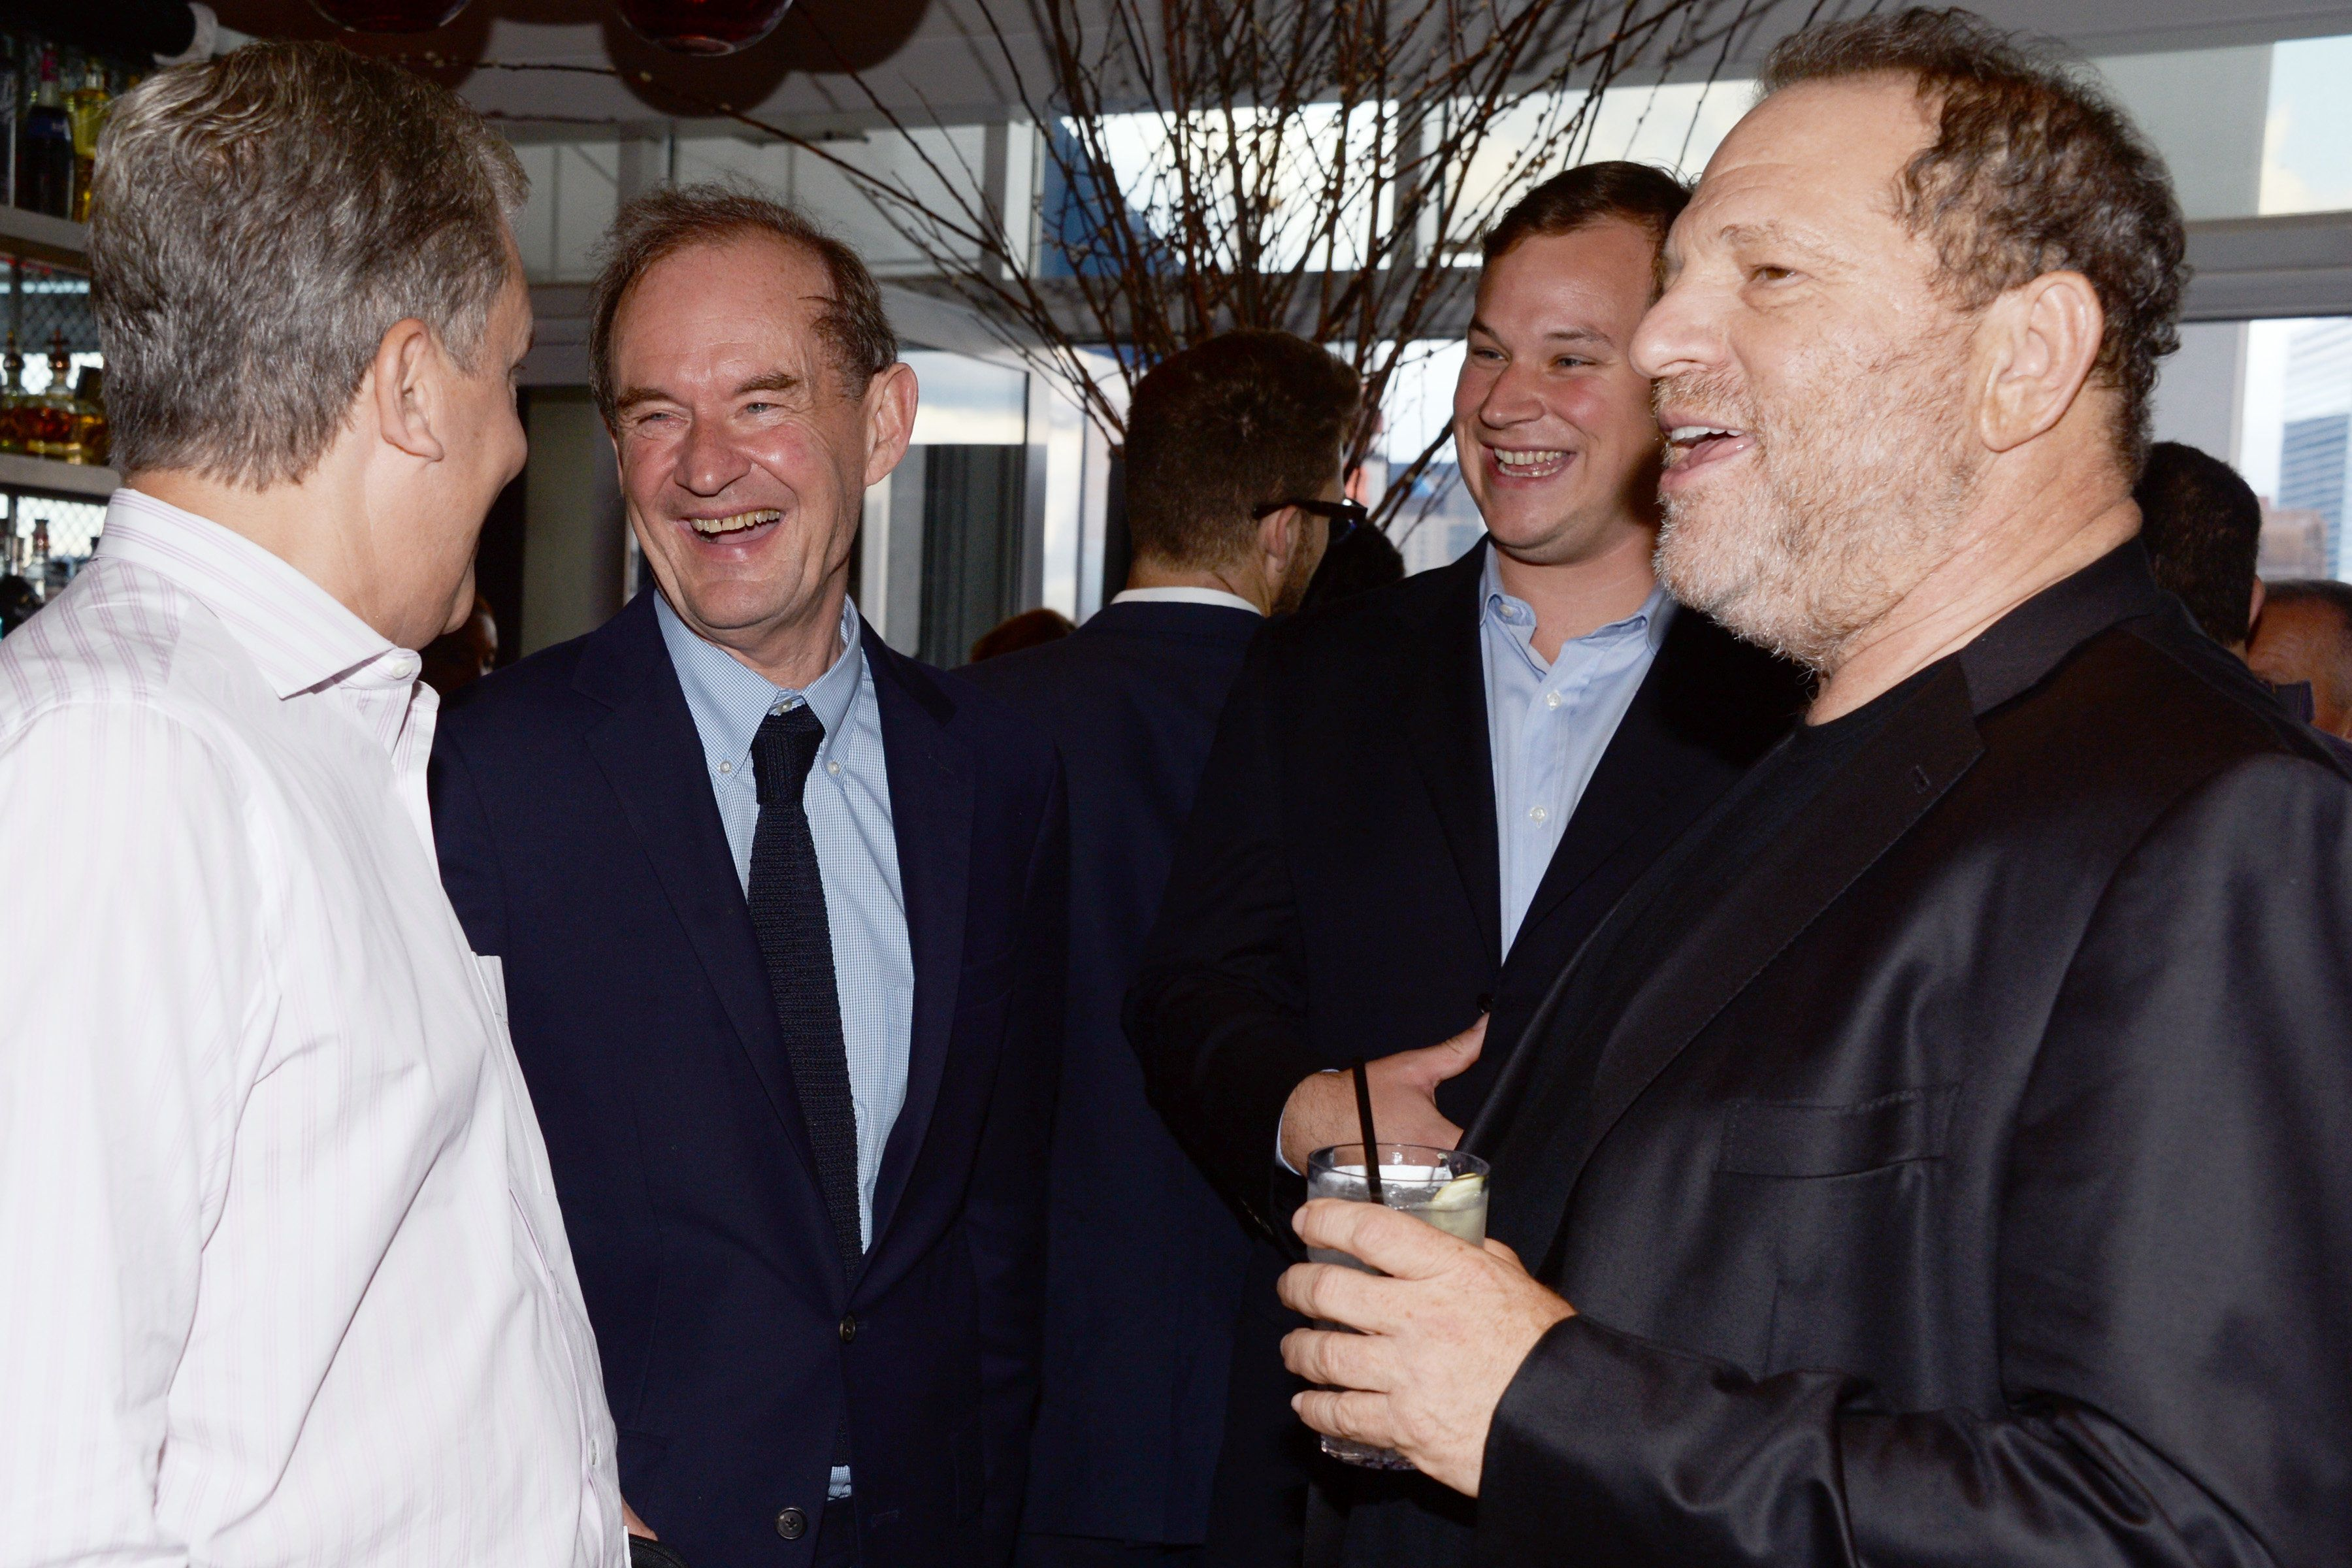 New York Times publisher Arthur Sulzberger, left, lawyer David Boies, a guest and studio executive Harvey Weinstein attend a